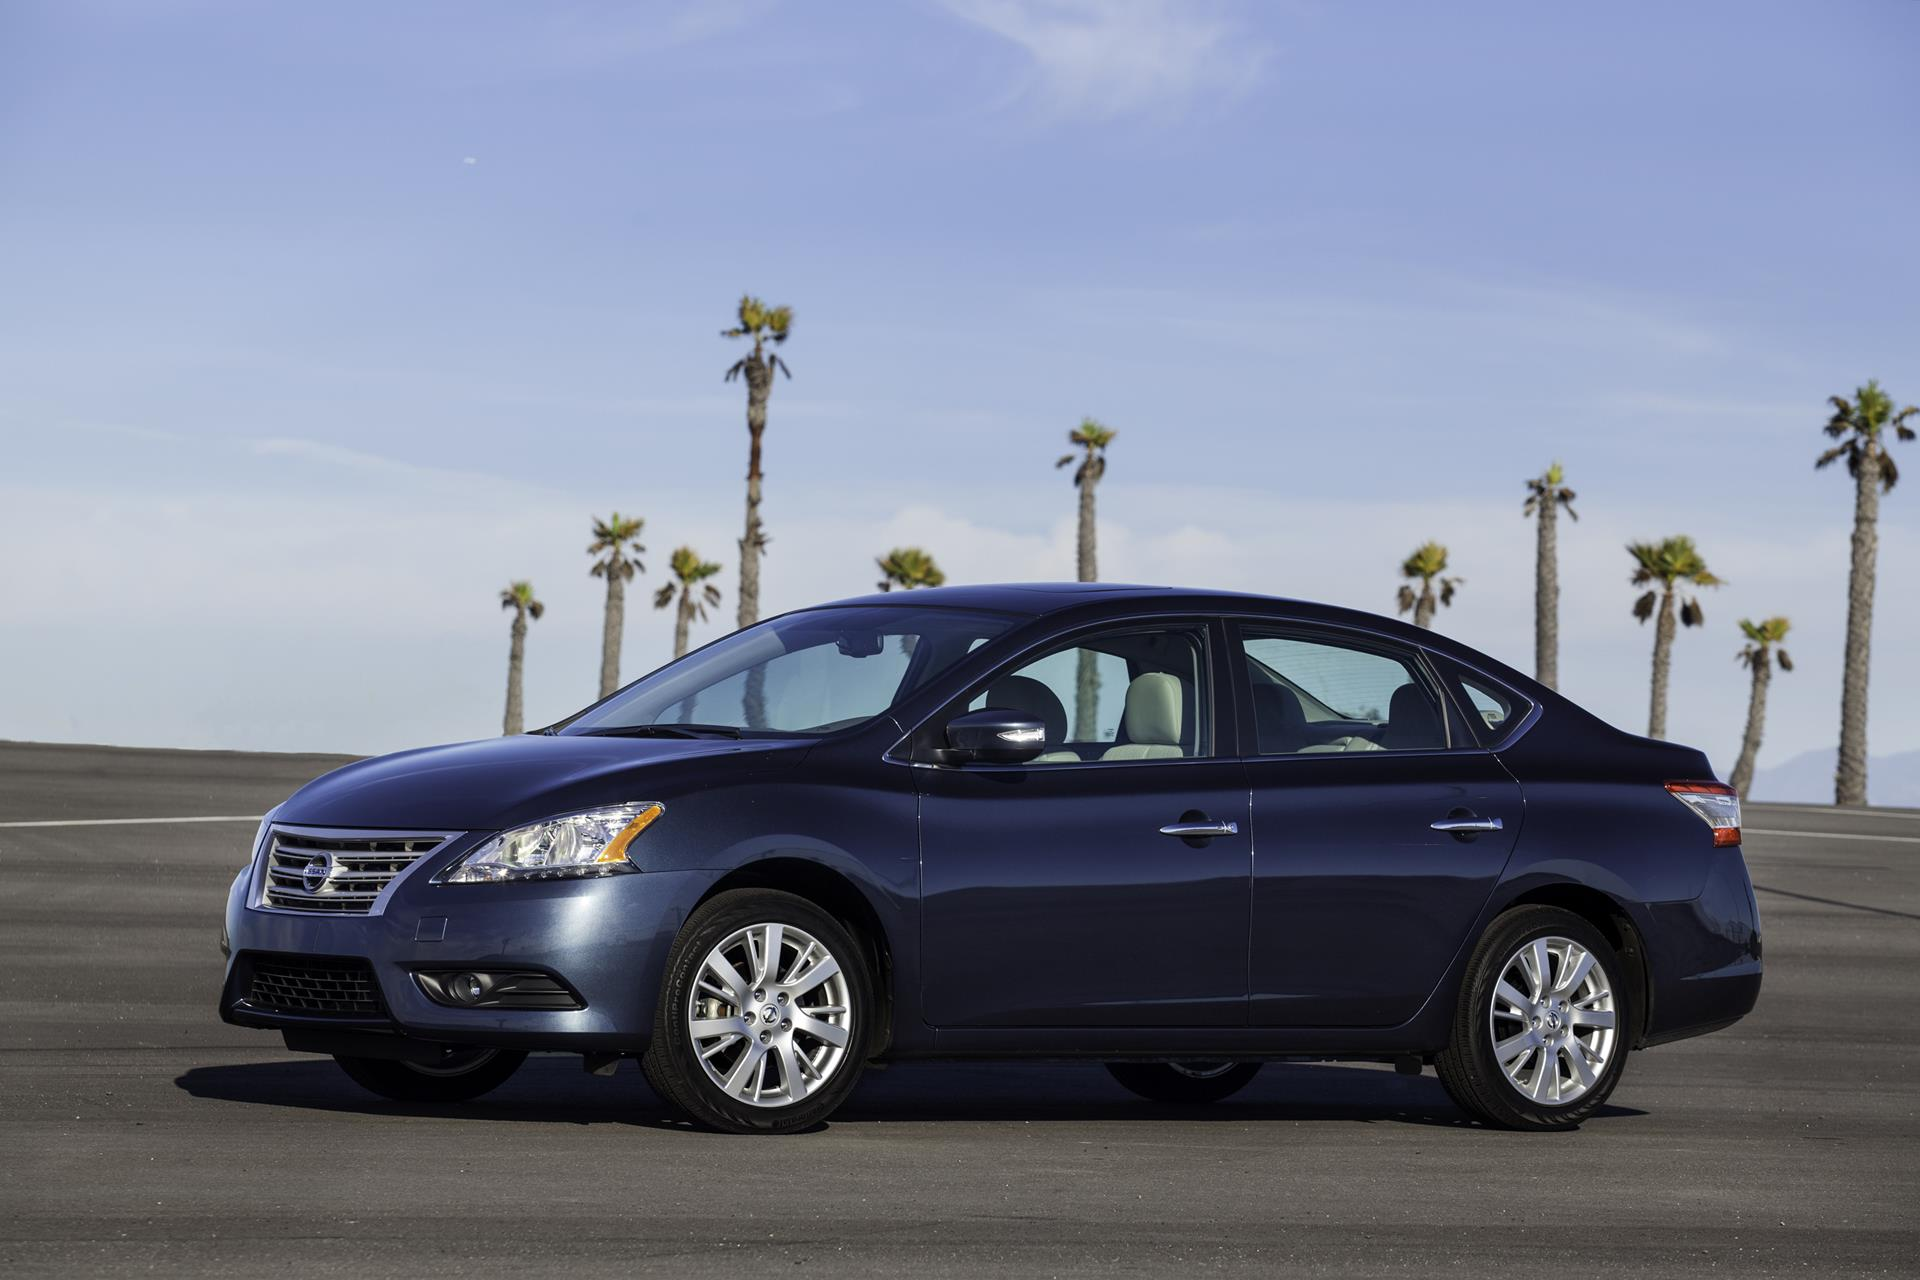 sell nissan mycar buy recent bh cardetails sentra in price car bahrain